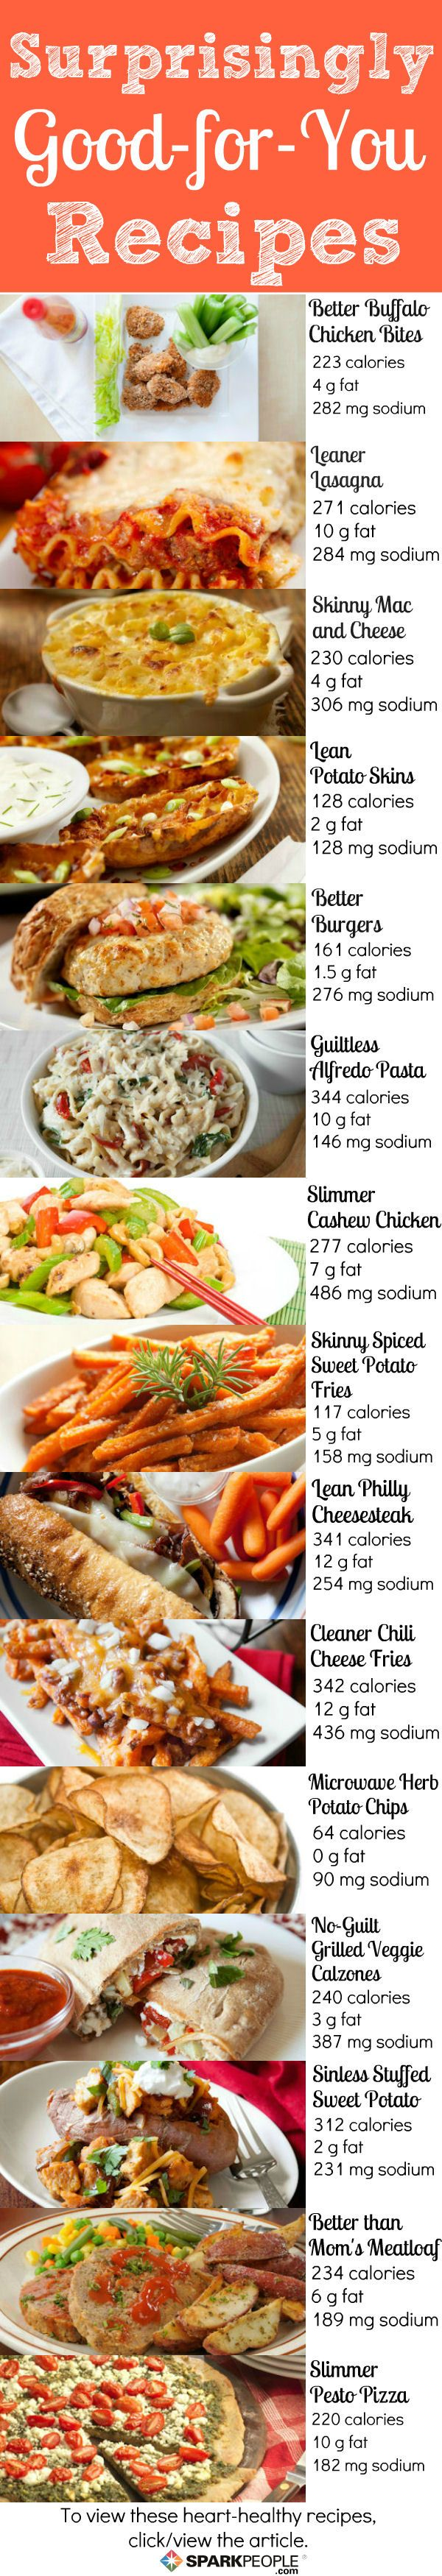 Heart healthy comfort food swaps comida saludable y recetas 15 heart healthy comfort food swaps your favorite foods made healthier click for forumfinder Choice Image